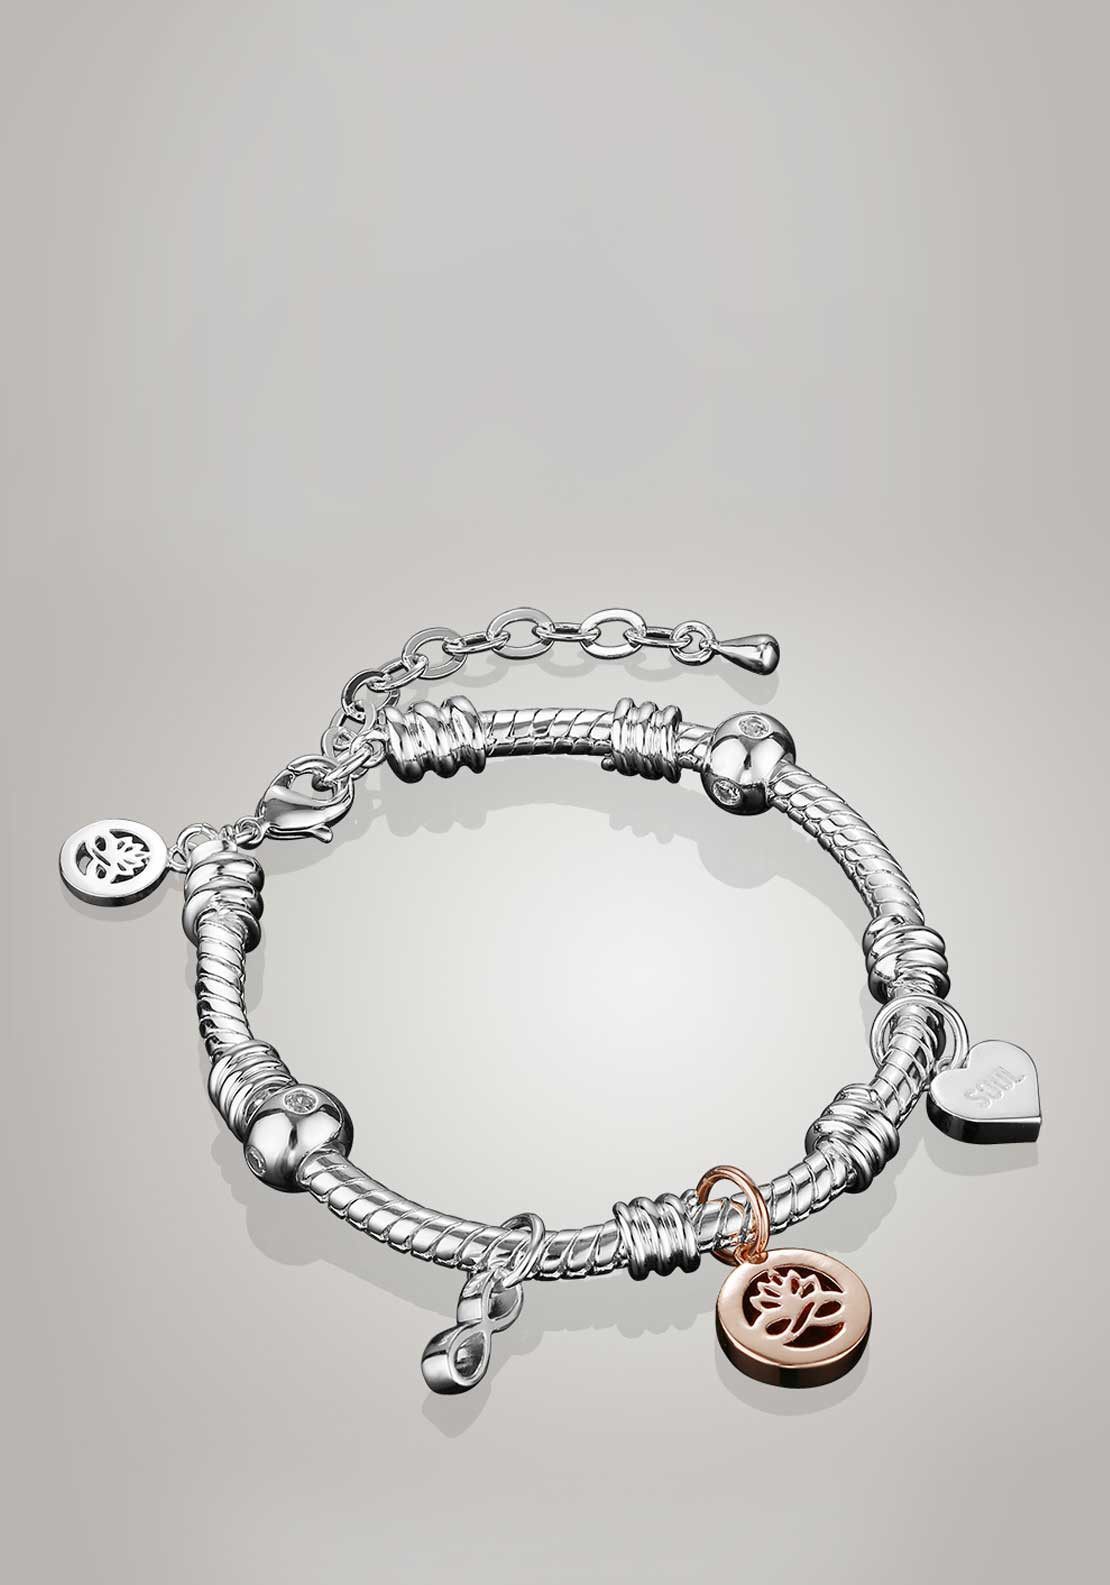 Newbridge Silverware Ti Amo Collection Charm Bracelet, Silver